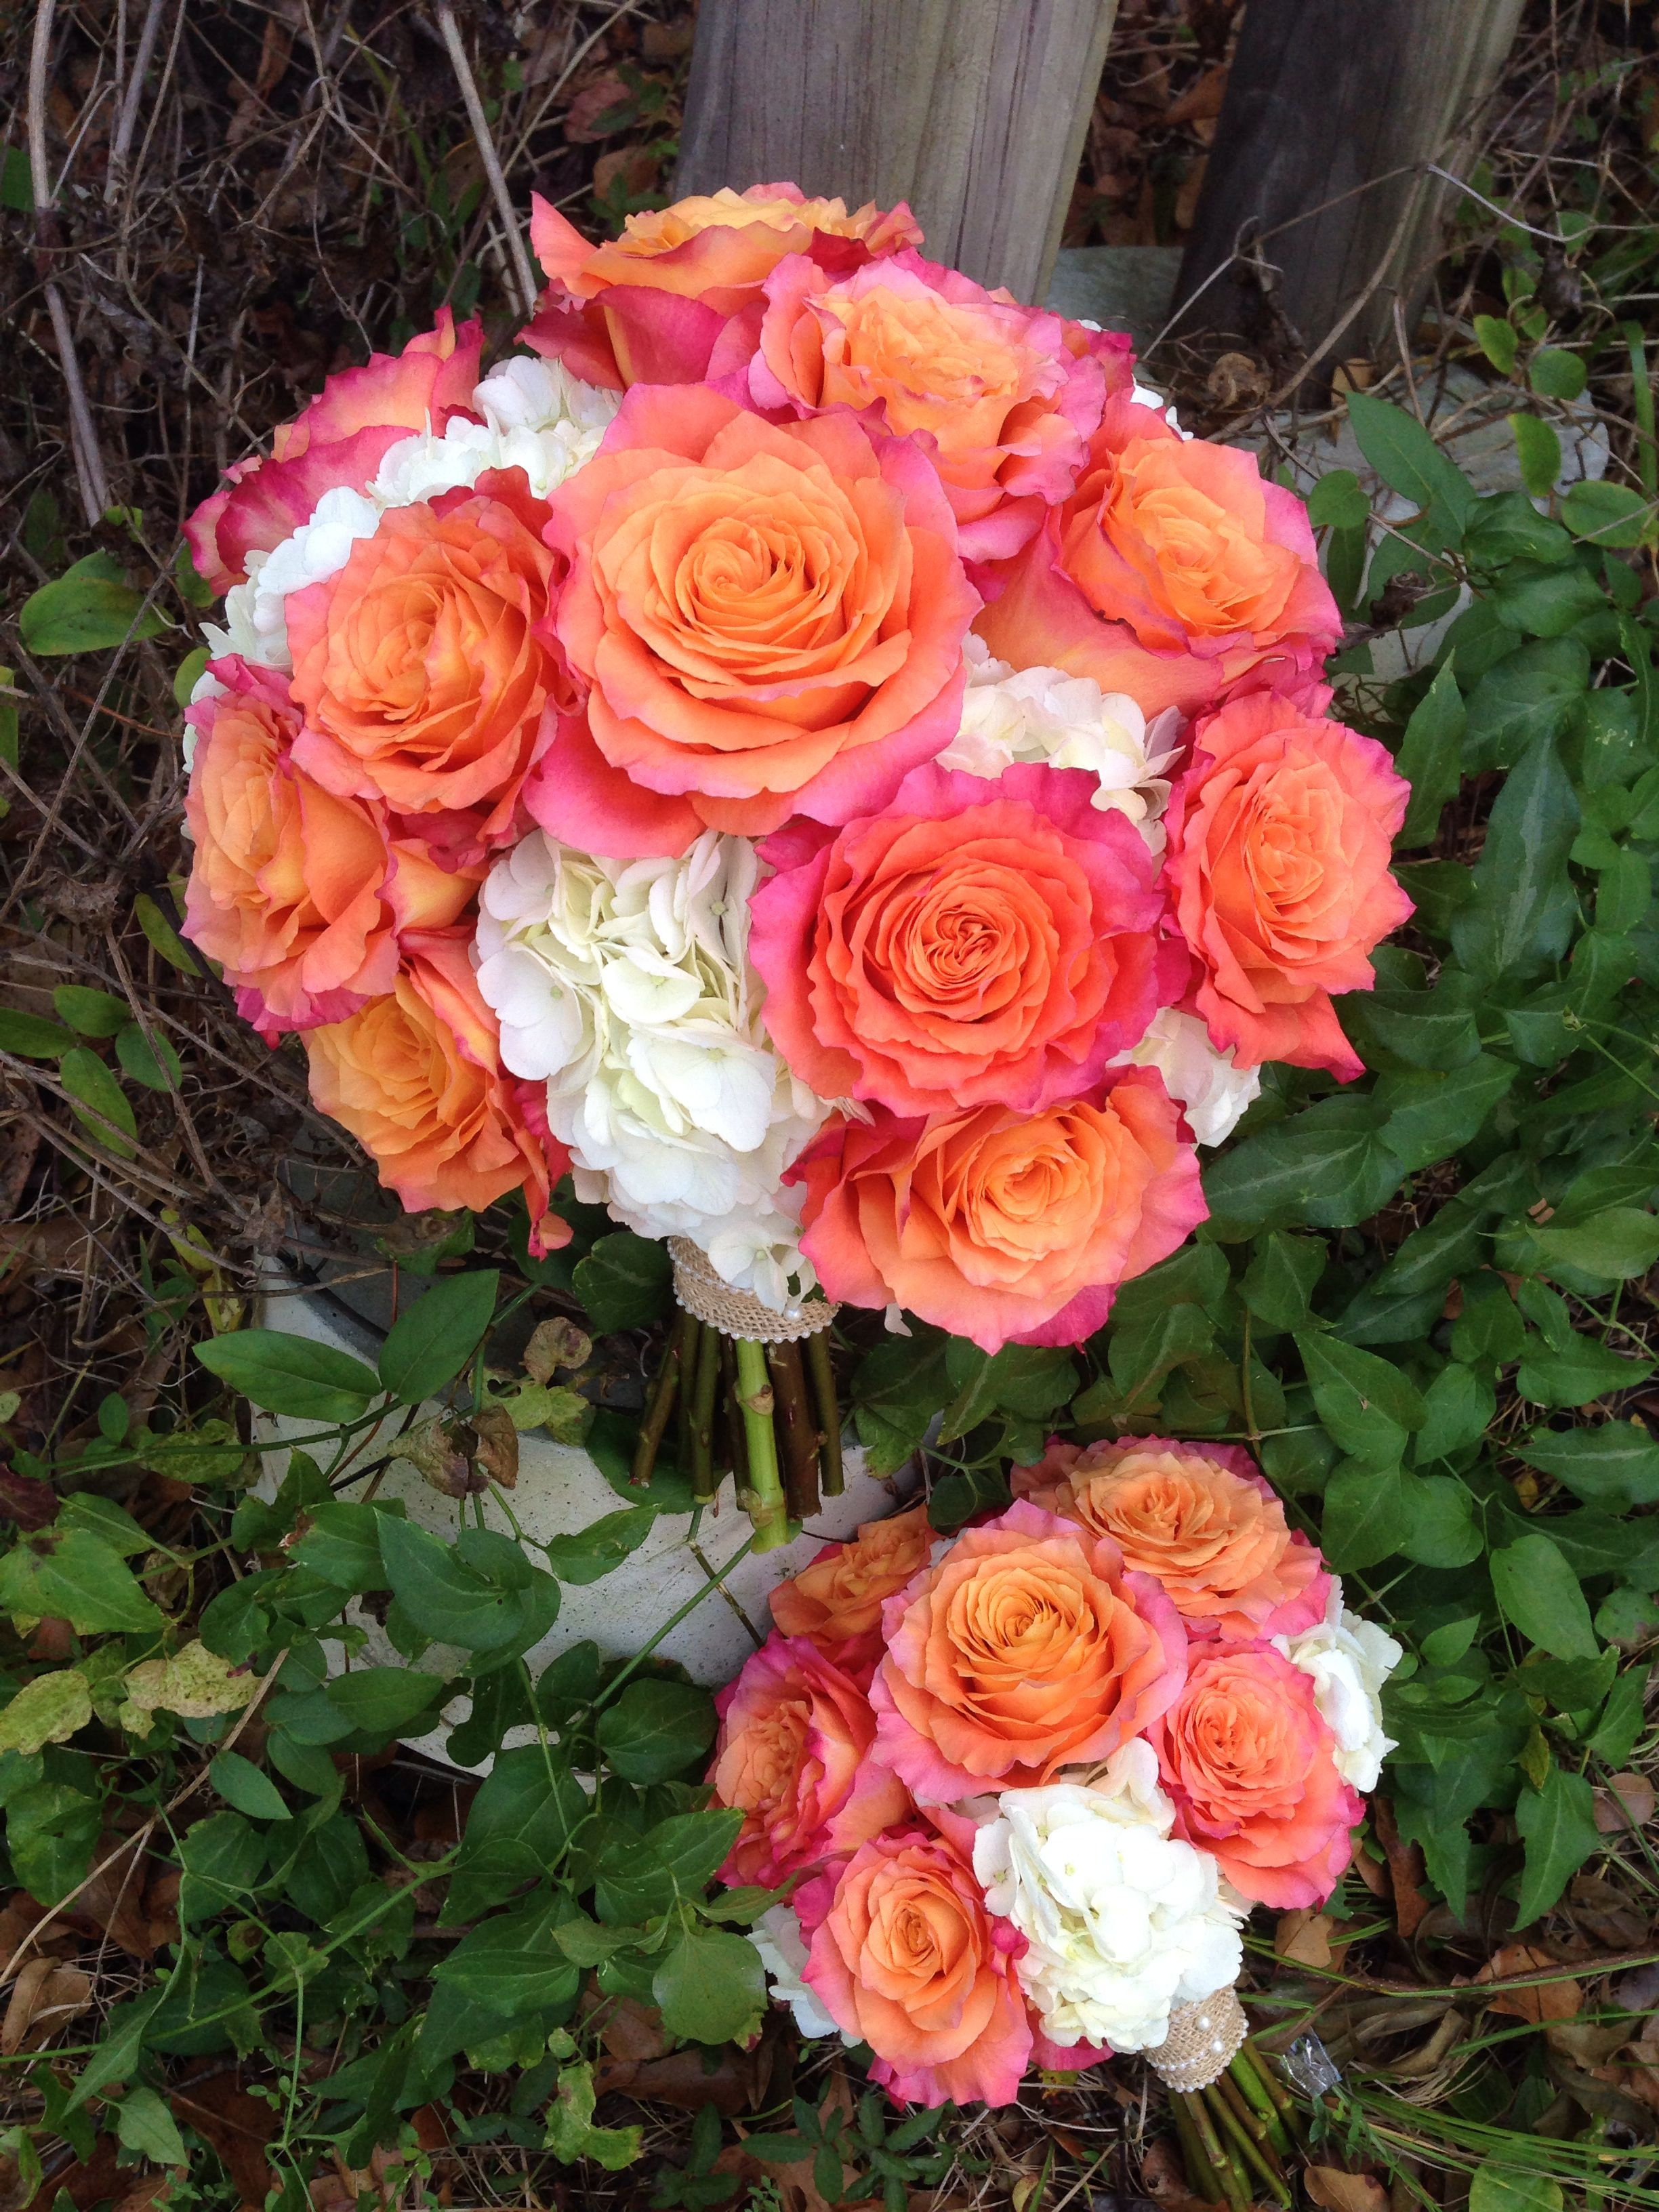 White Hydrangeas and Coral Free Spirit Rose bouquets My